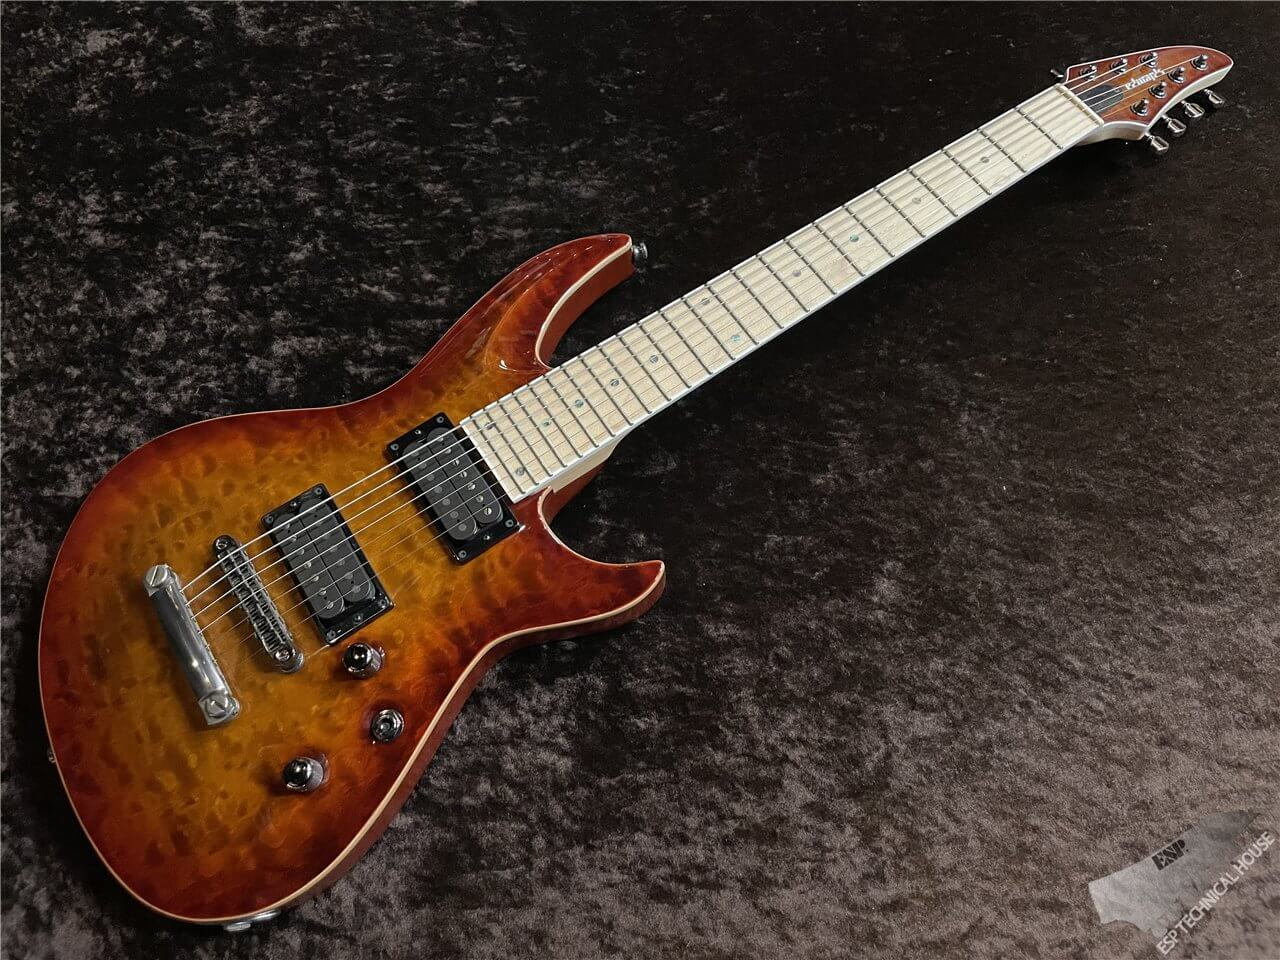 【即納可能/中古品】E-HR-III NT7 QM/M【Antique Cherry Sunburst】茶水店